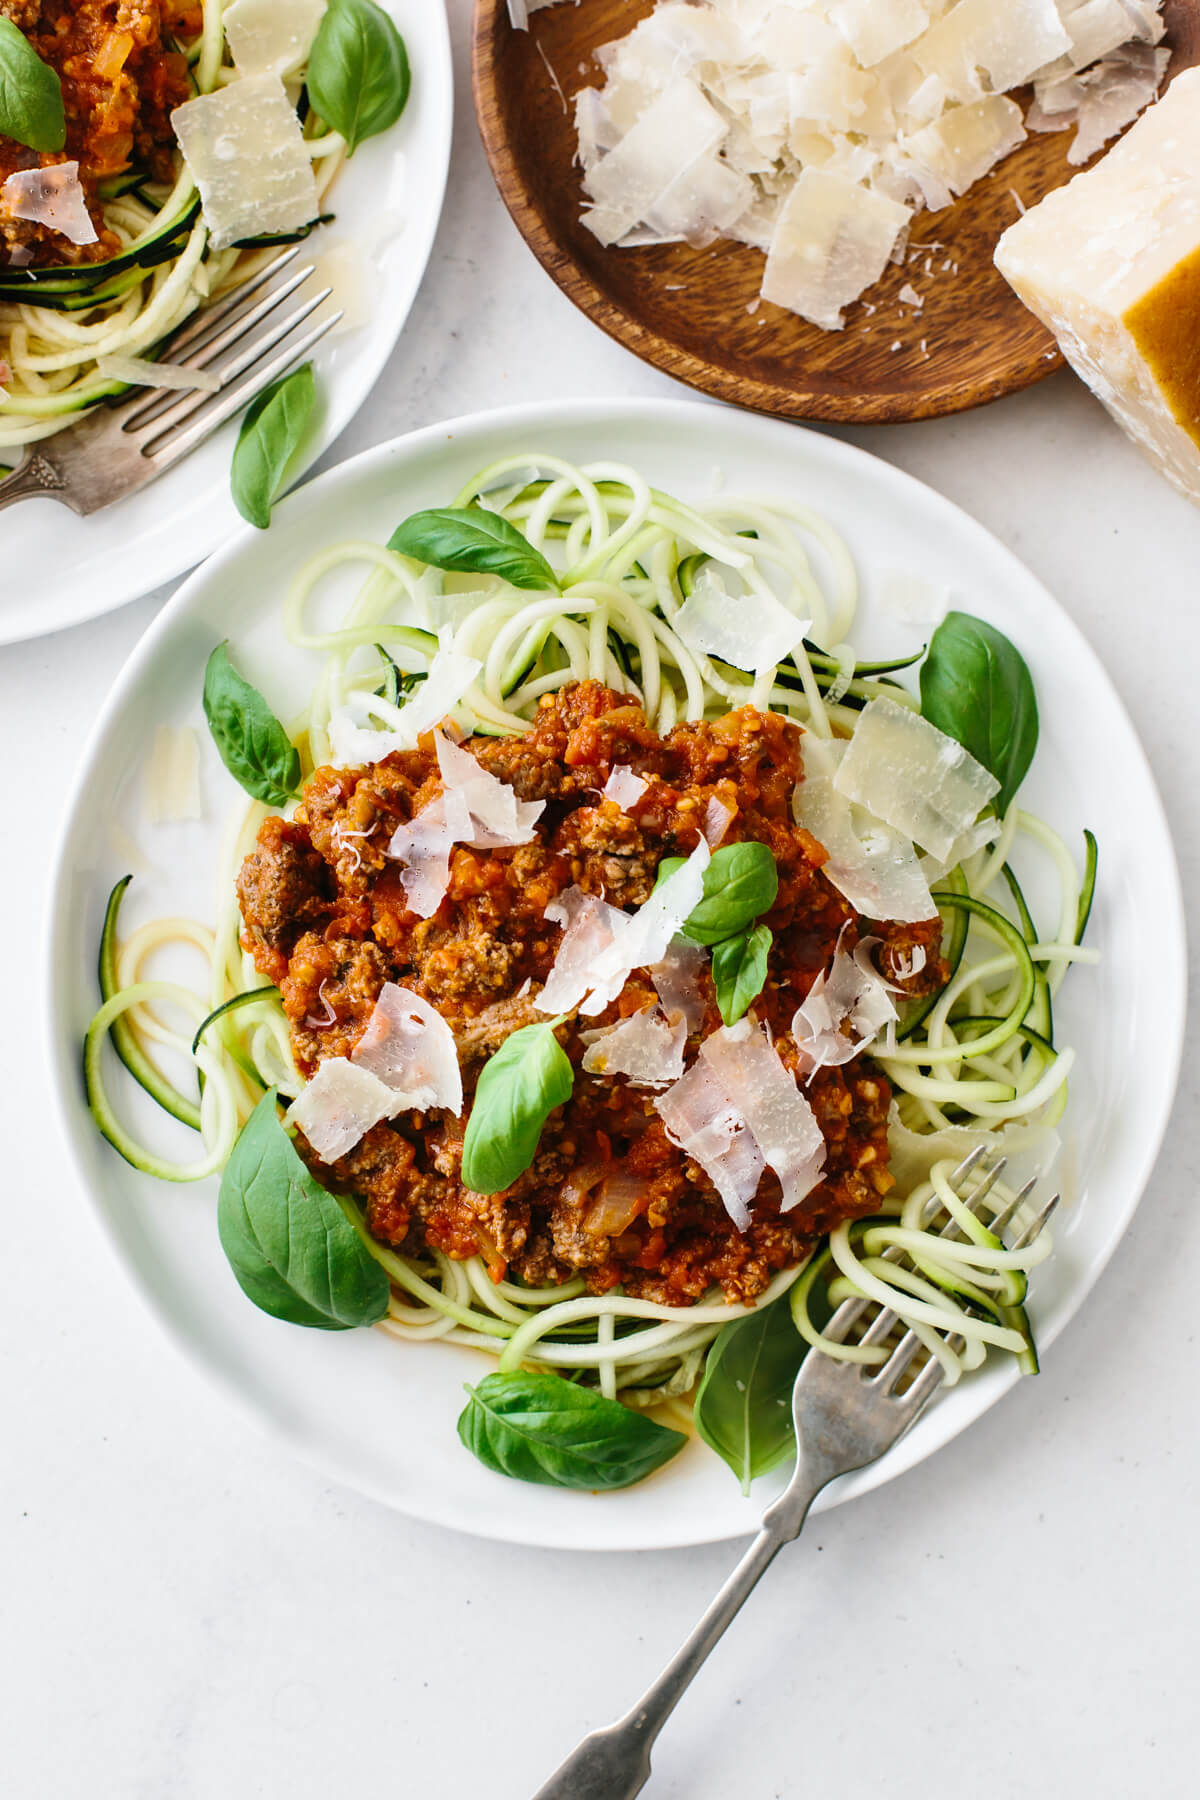 A plate of zucchini noodles topped with bolognese sauce, fresh parmesan and basil.